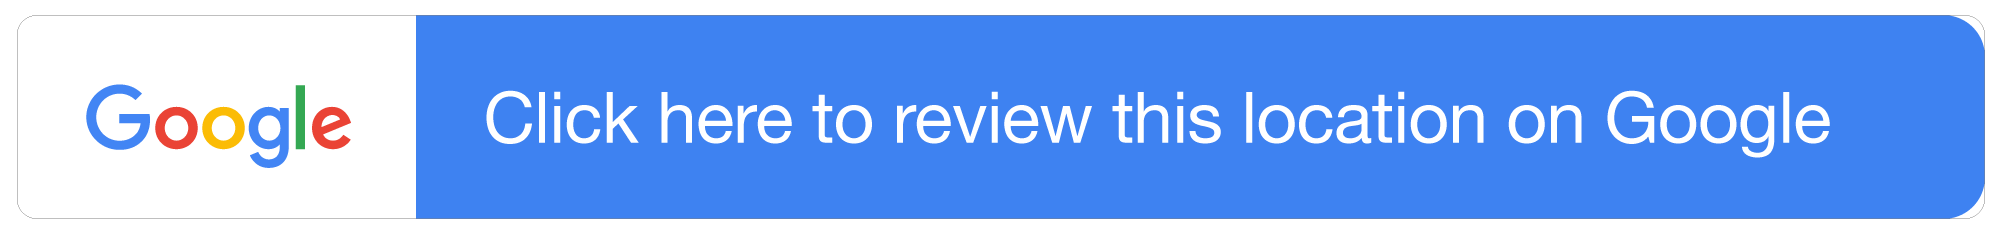 Review this location on Google